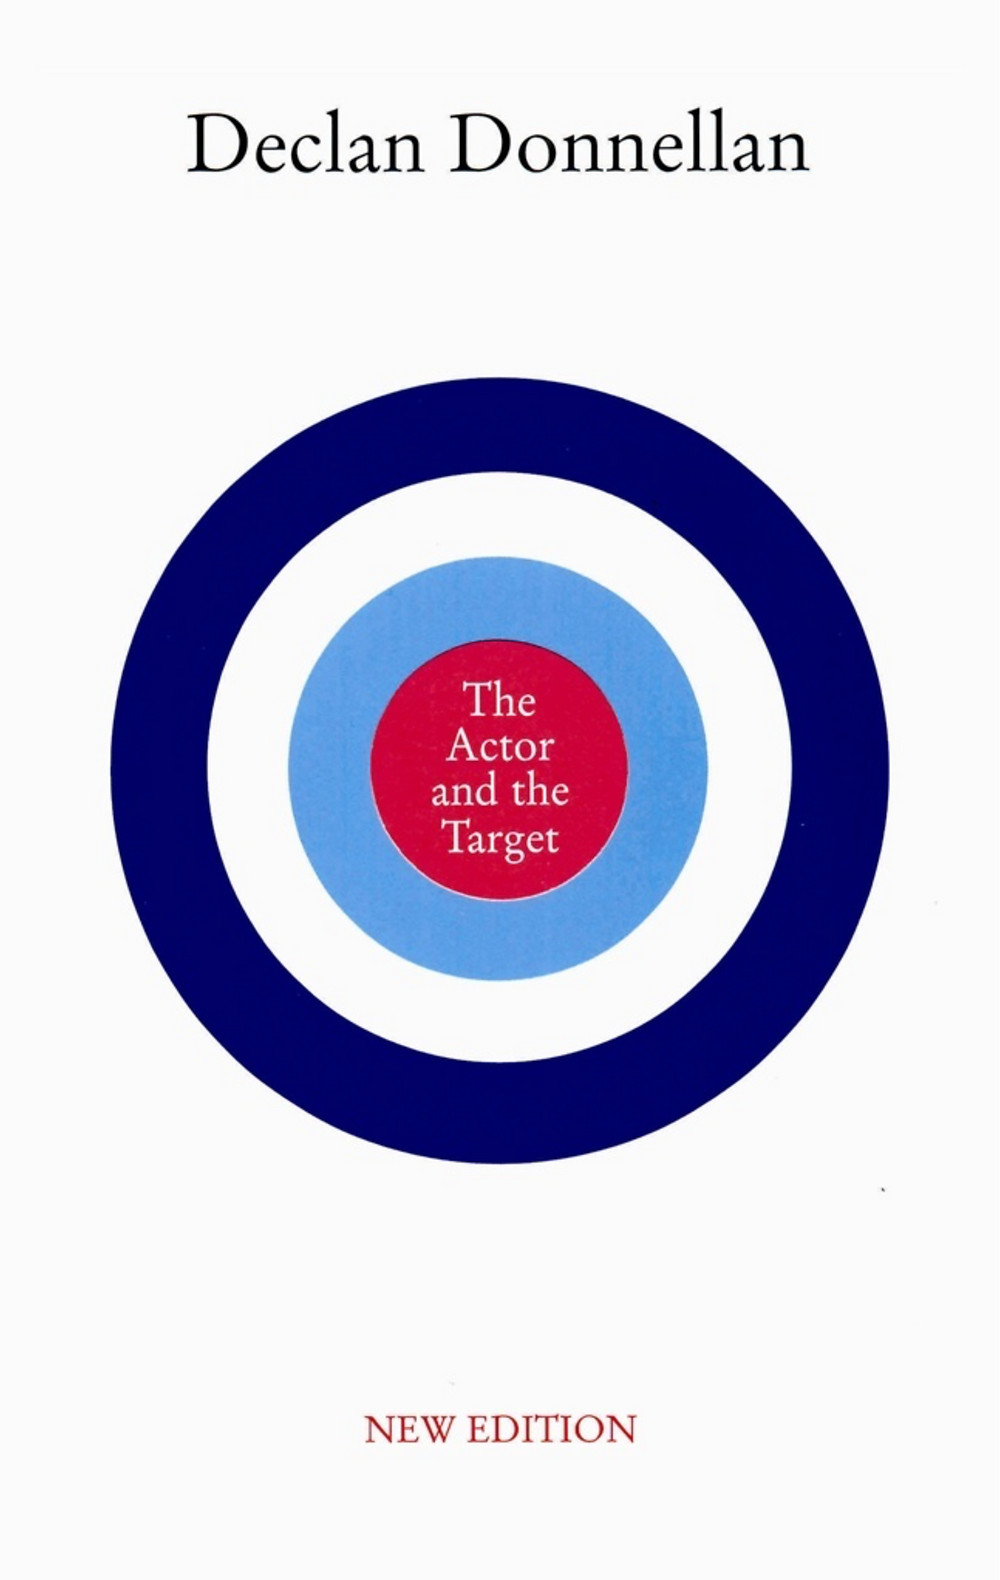 Cover of The Actor and the Target by Declan Donnellan